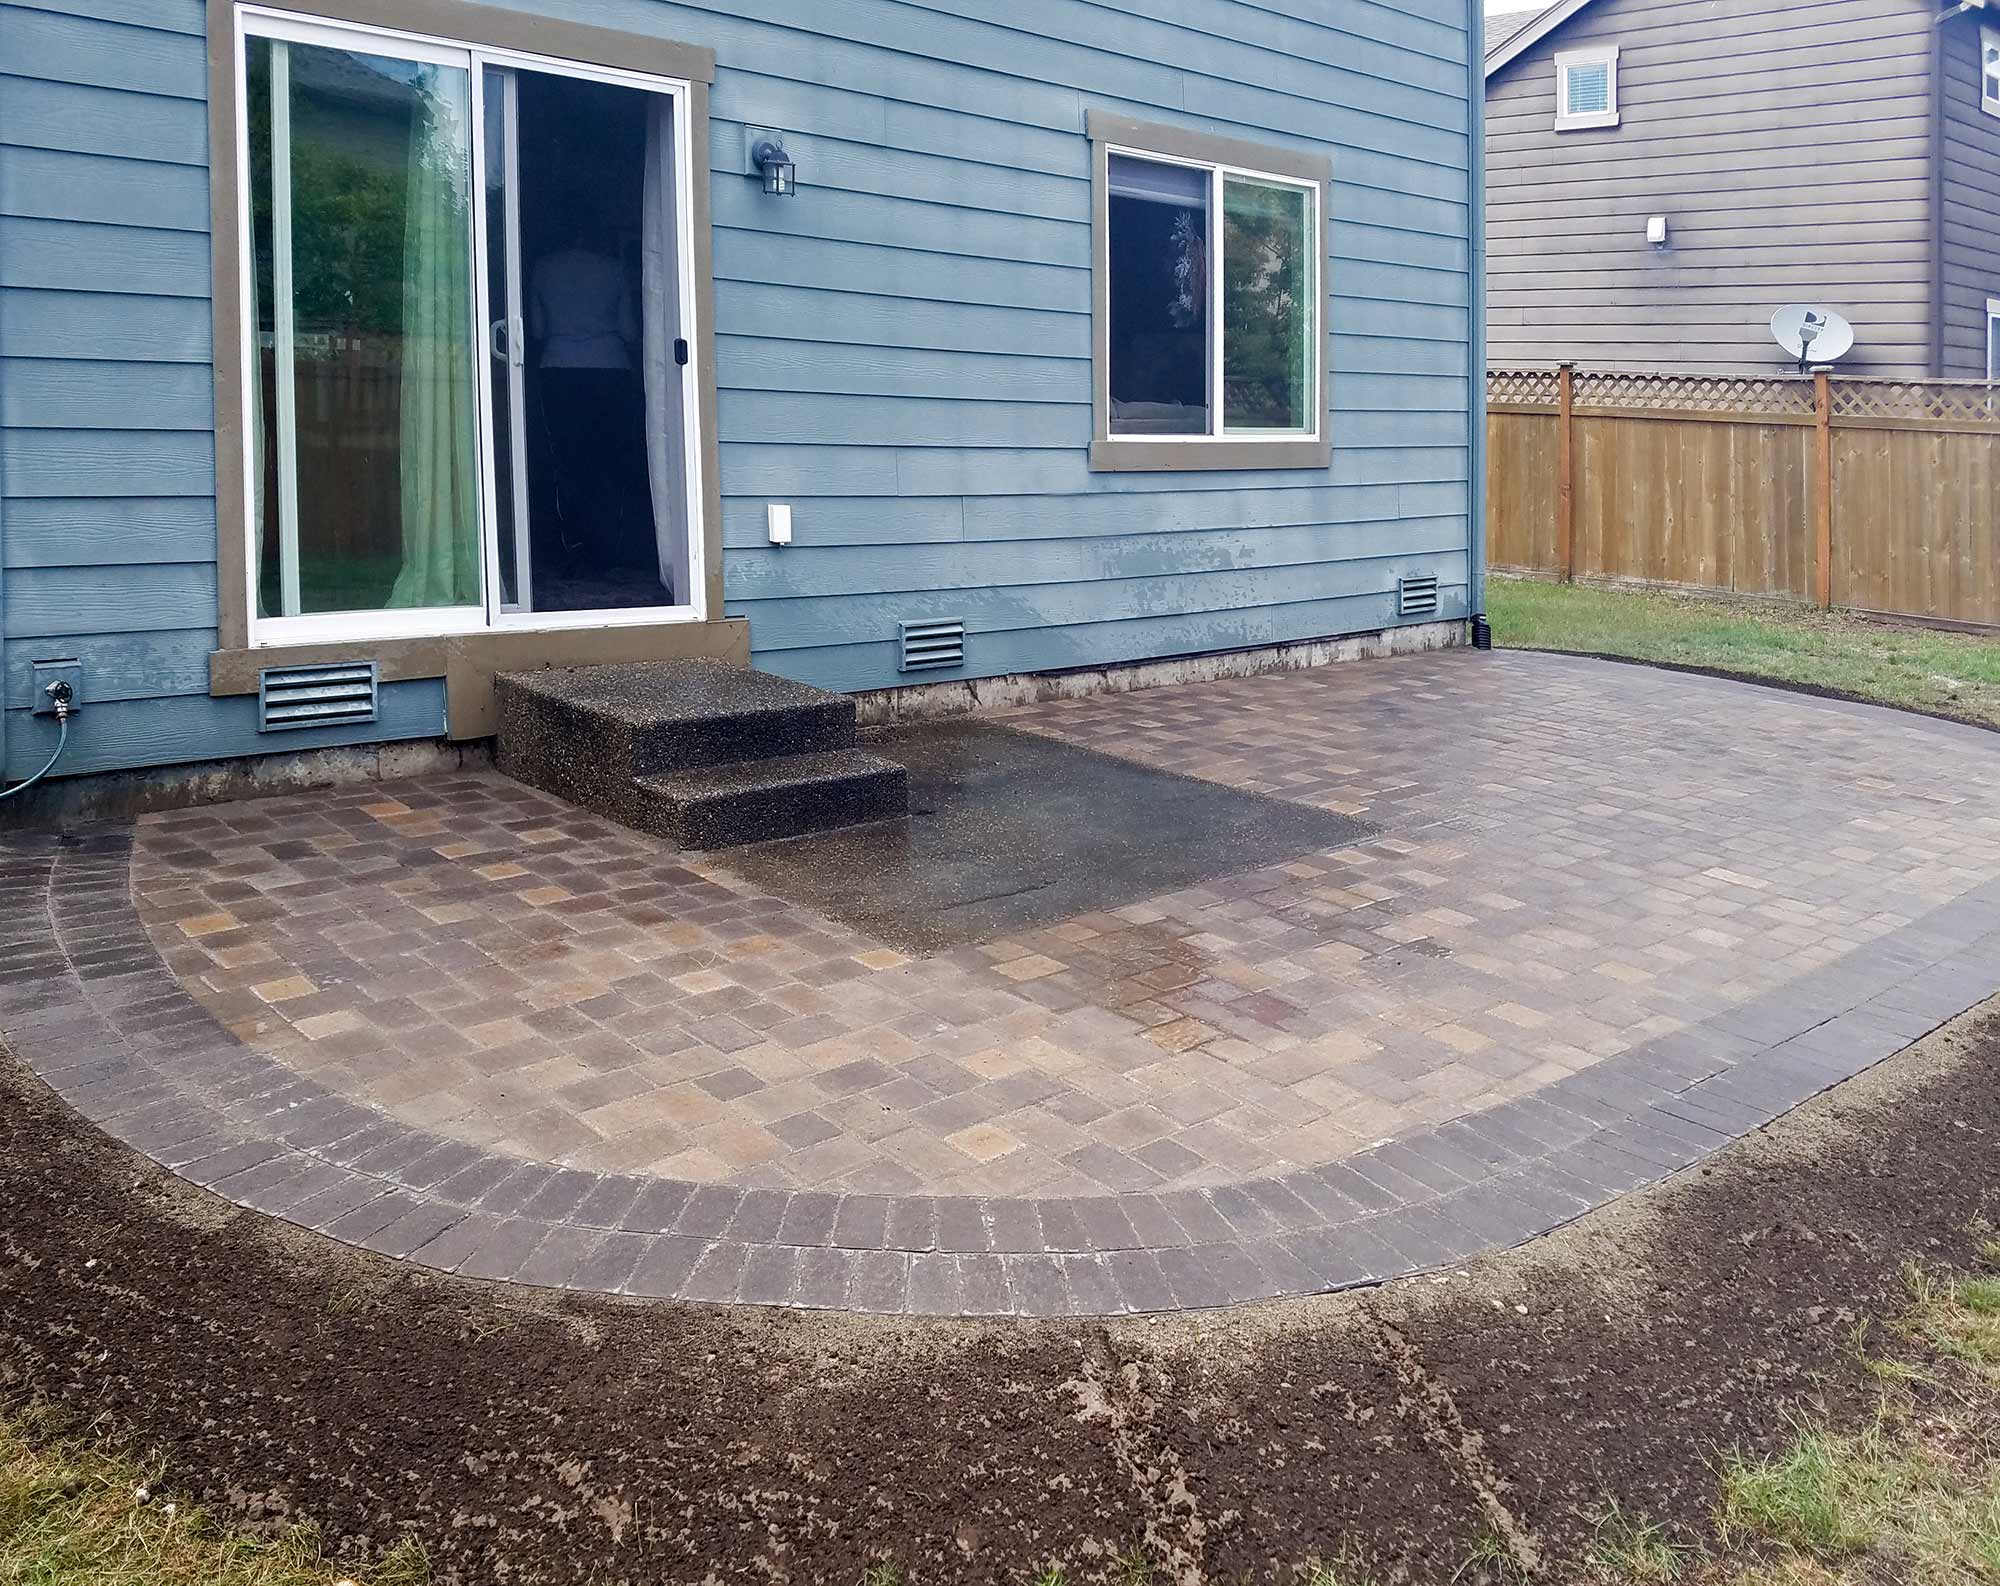 Paver patio extension features Western Interlock Slimline Columbia pavers with a double border.